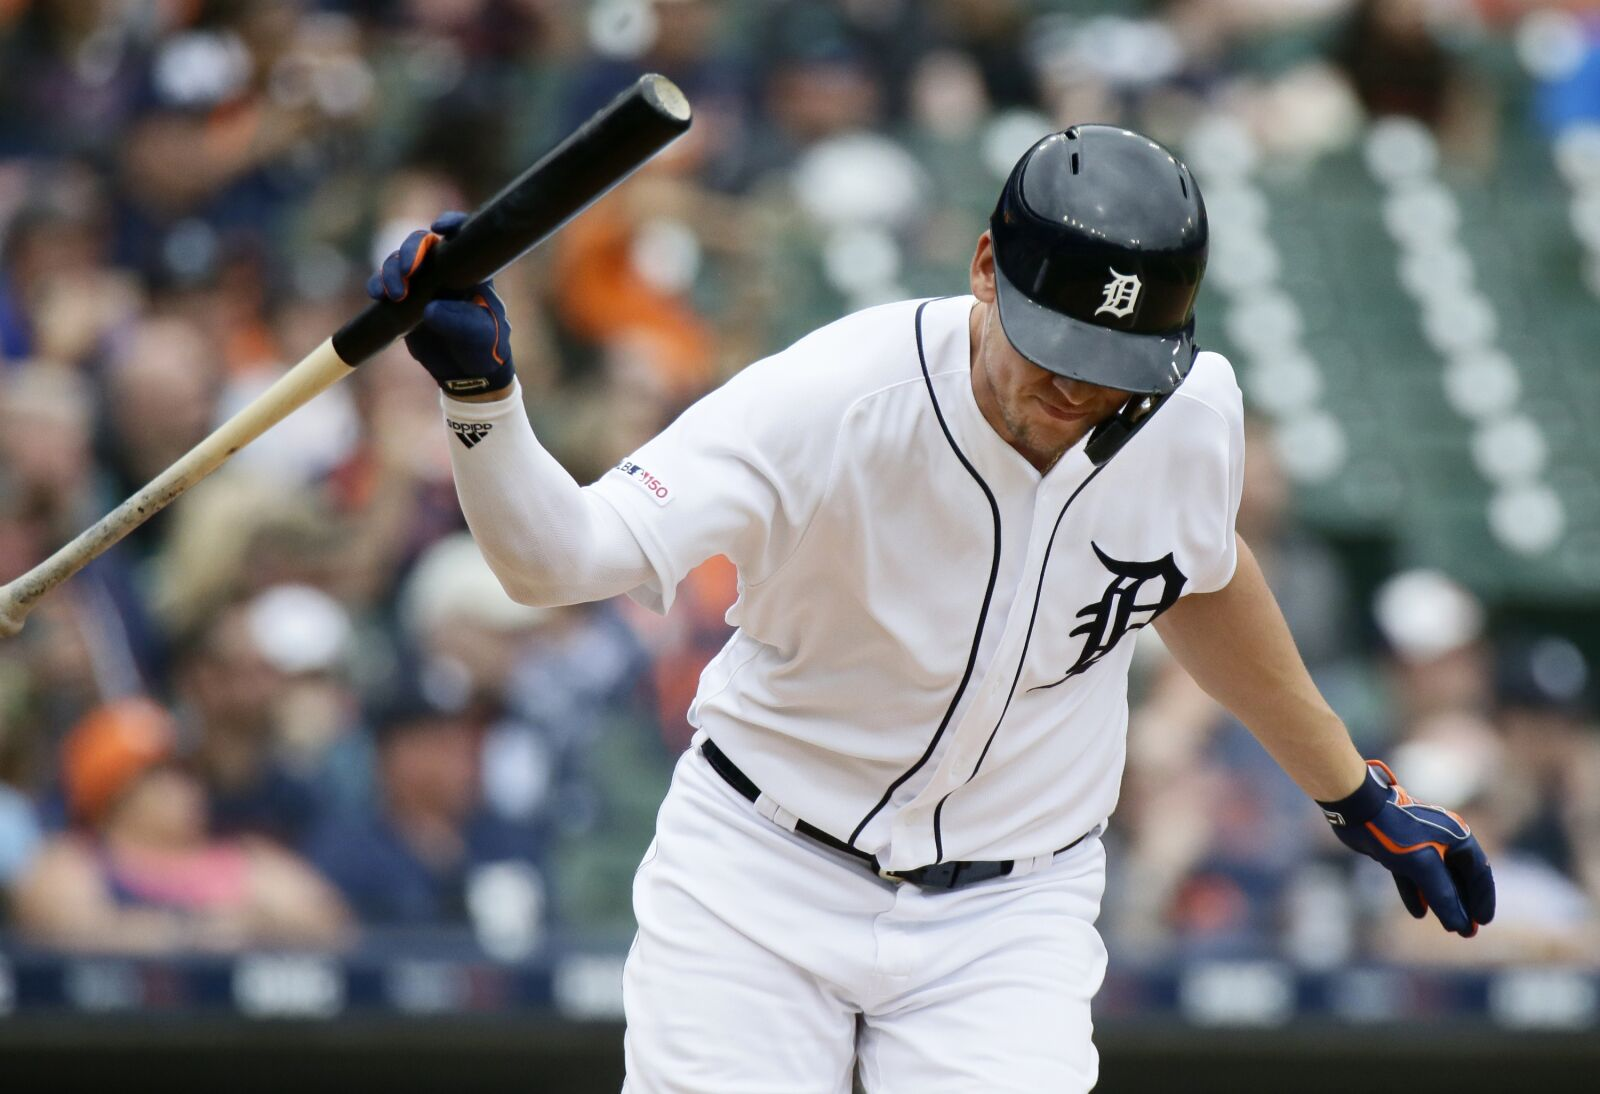 Detroit Tigers: Exciting Saturday spoiled by disappointing end to weekend